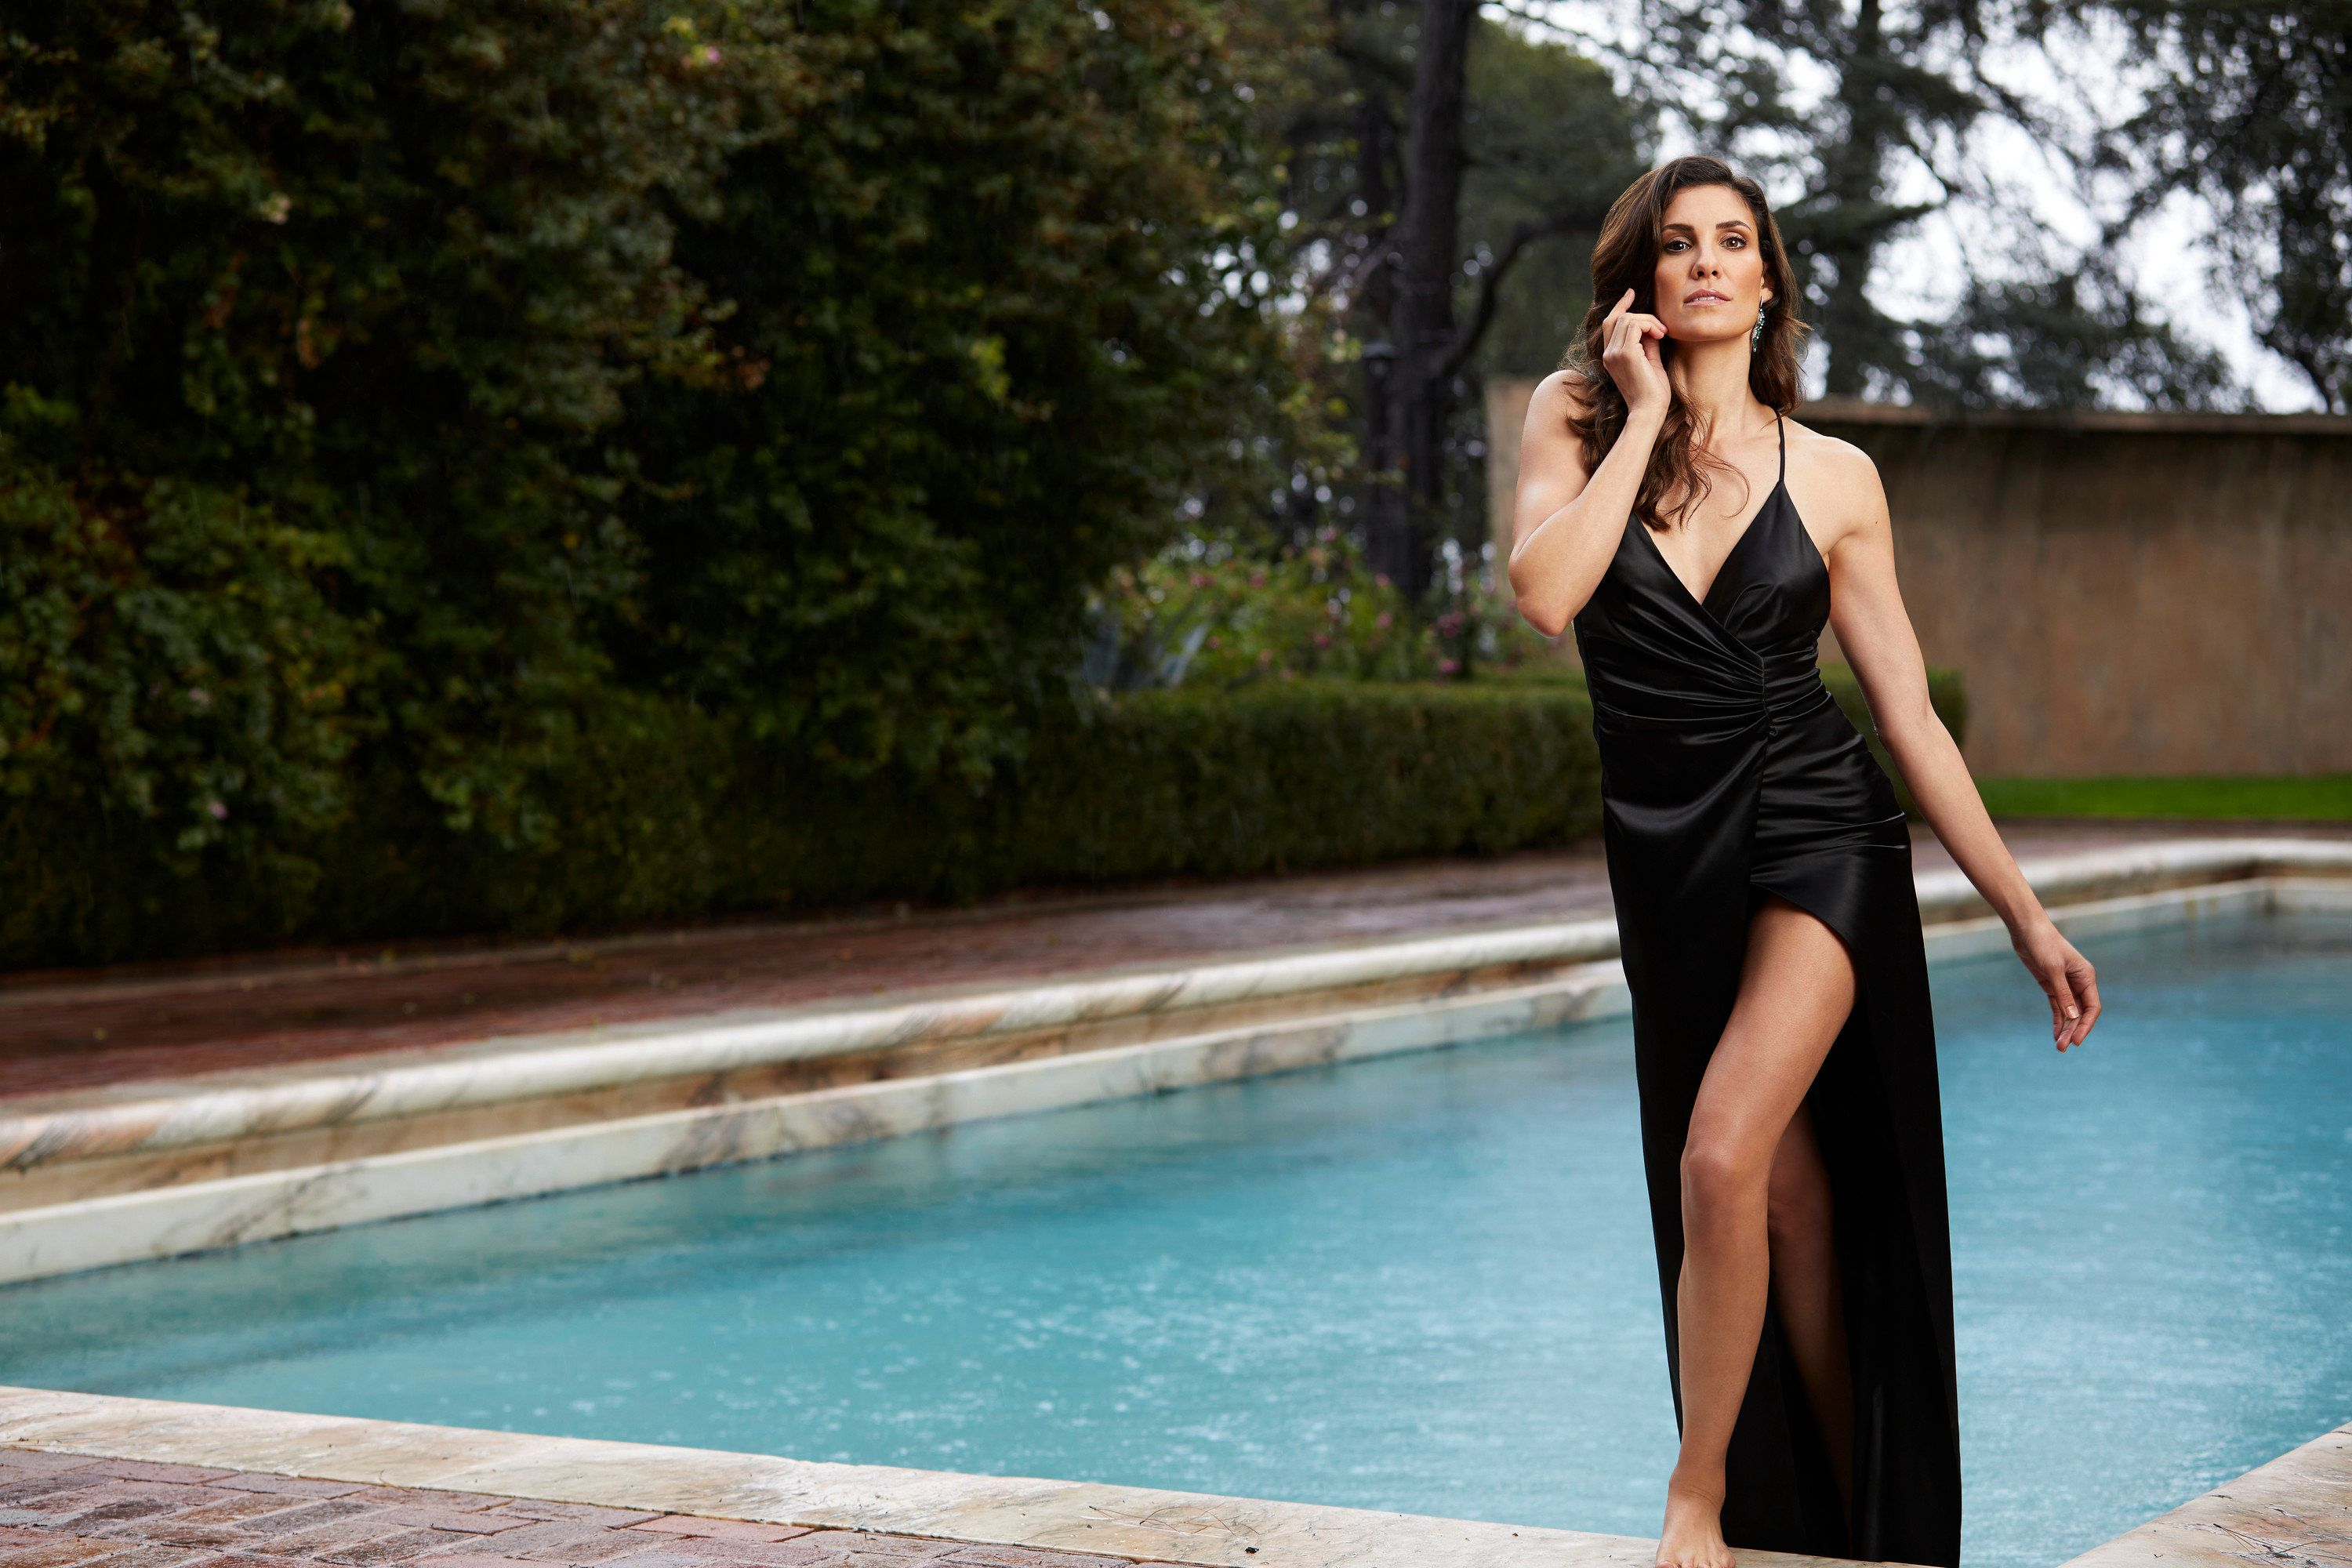 \u200bDaniela Ruah wears an elegant black evening dress as she seemingly is emerging from a swimming pool